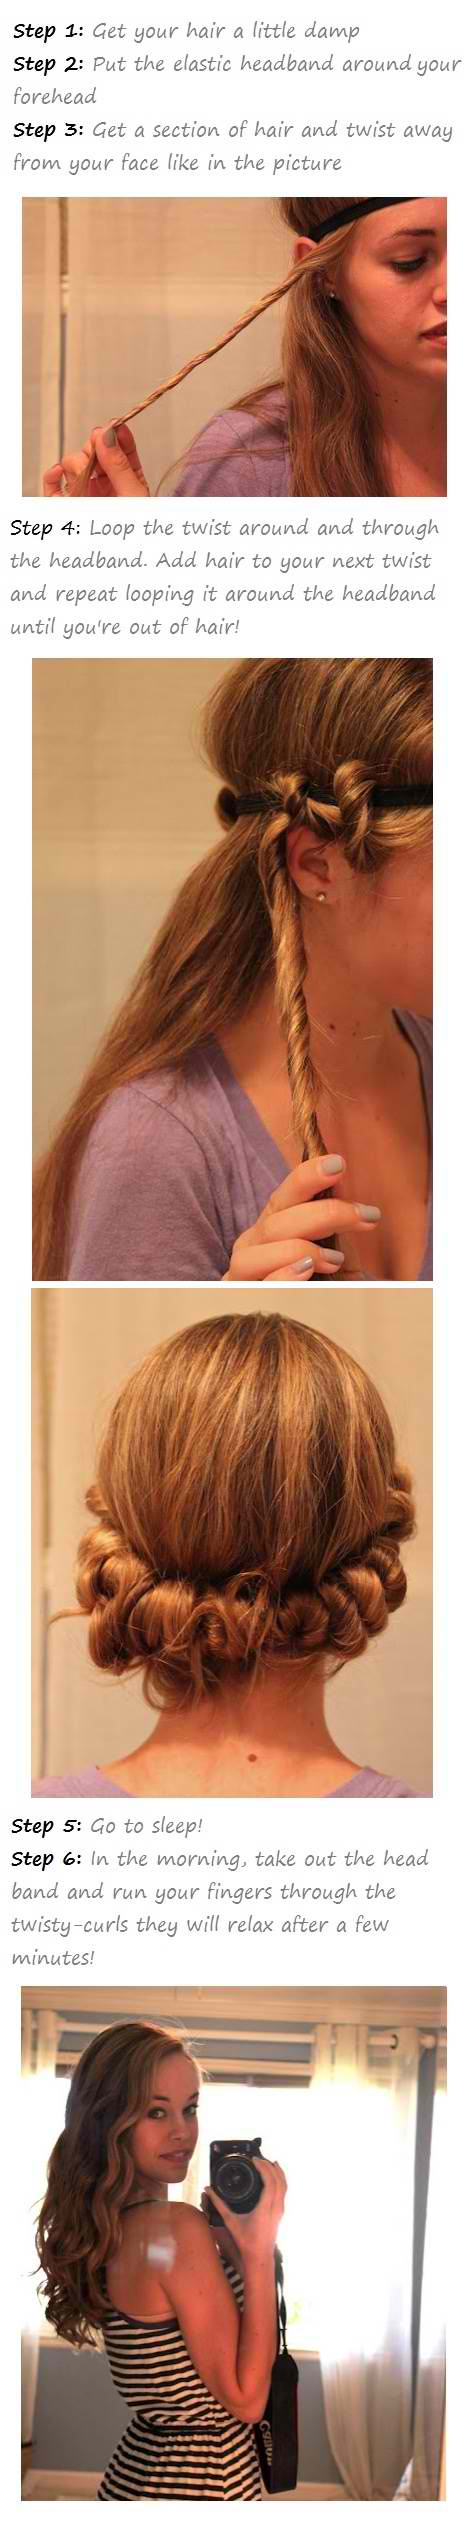 Natural Curls using loose headband SOOO CUTE!! gonna do it in a bit!:)